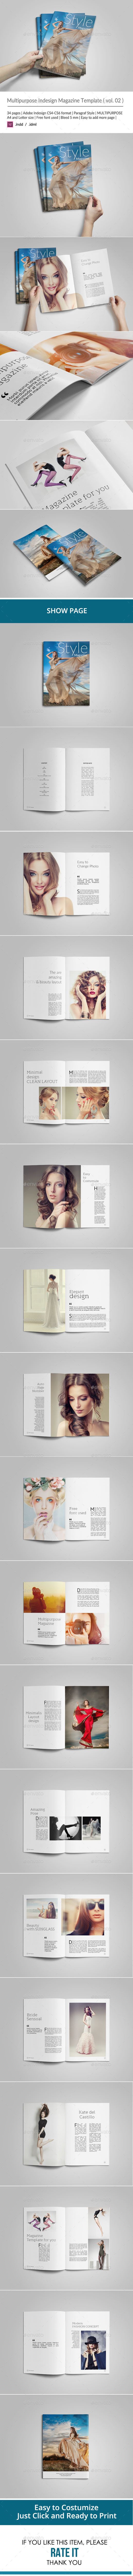 GraphicRiver Indesign Magazine Template 9018259